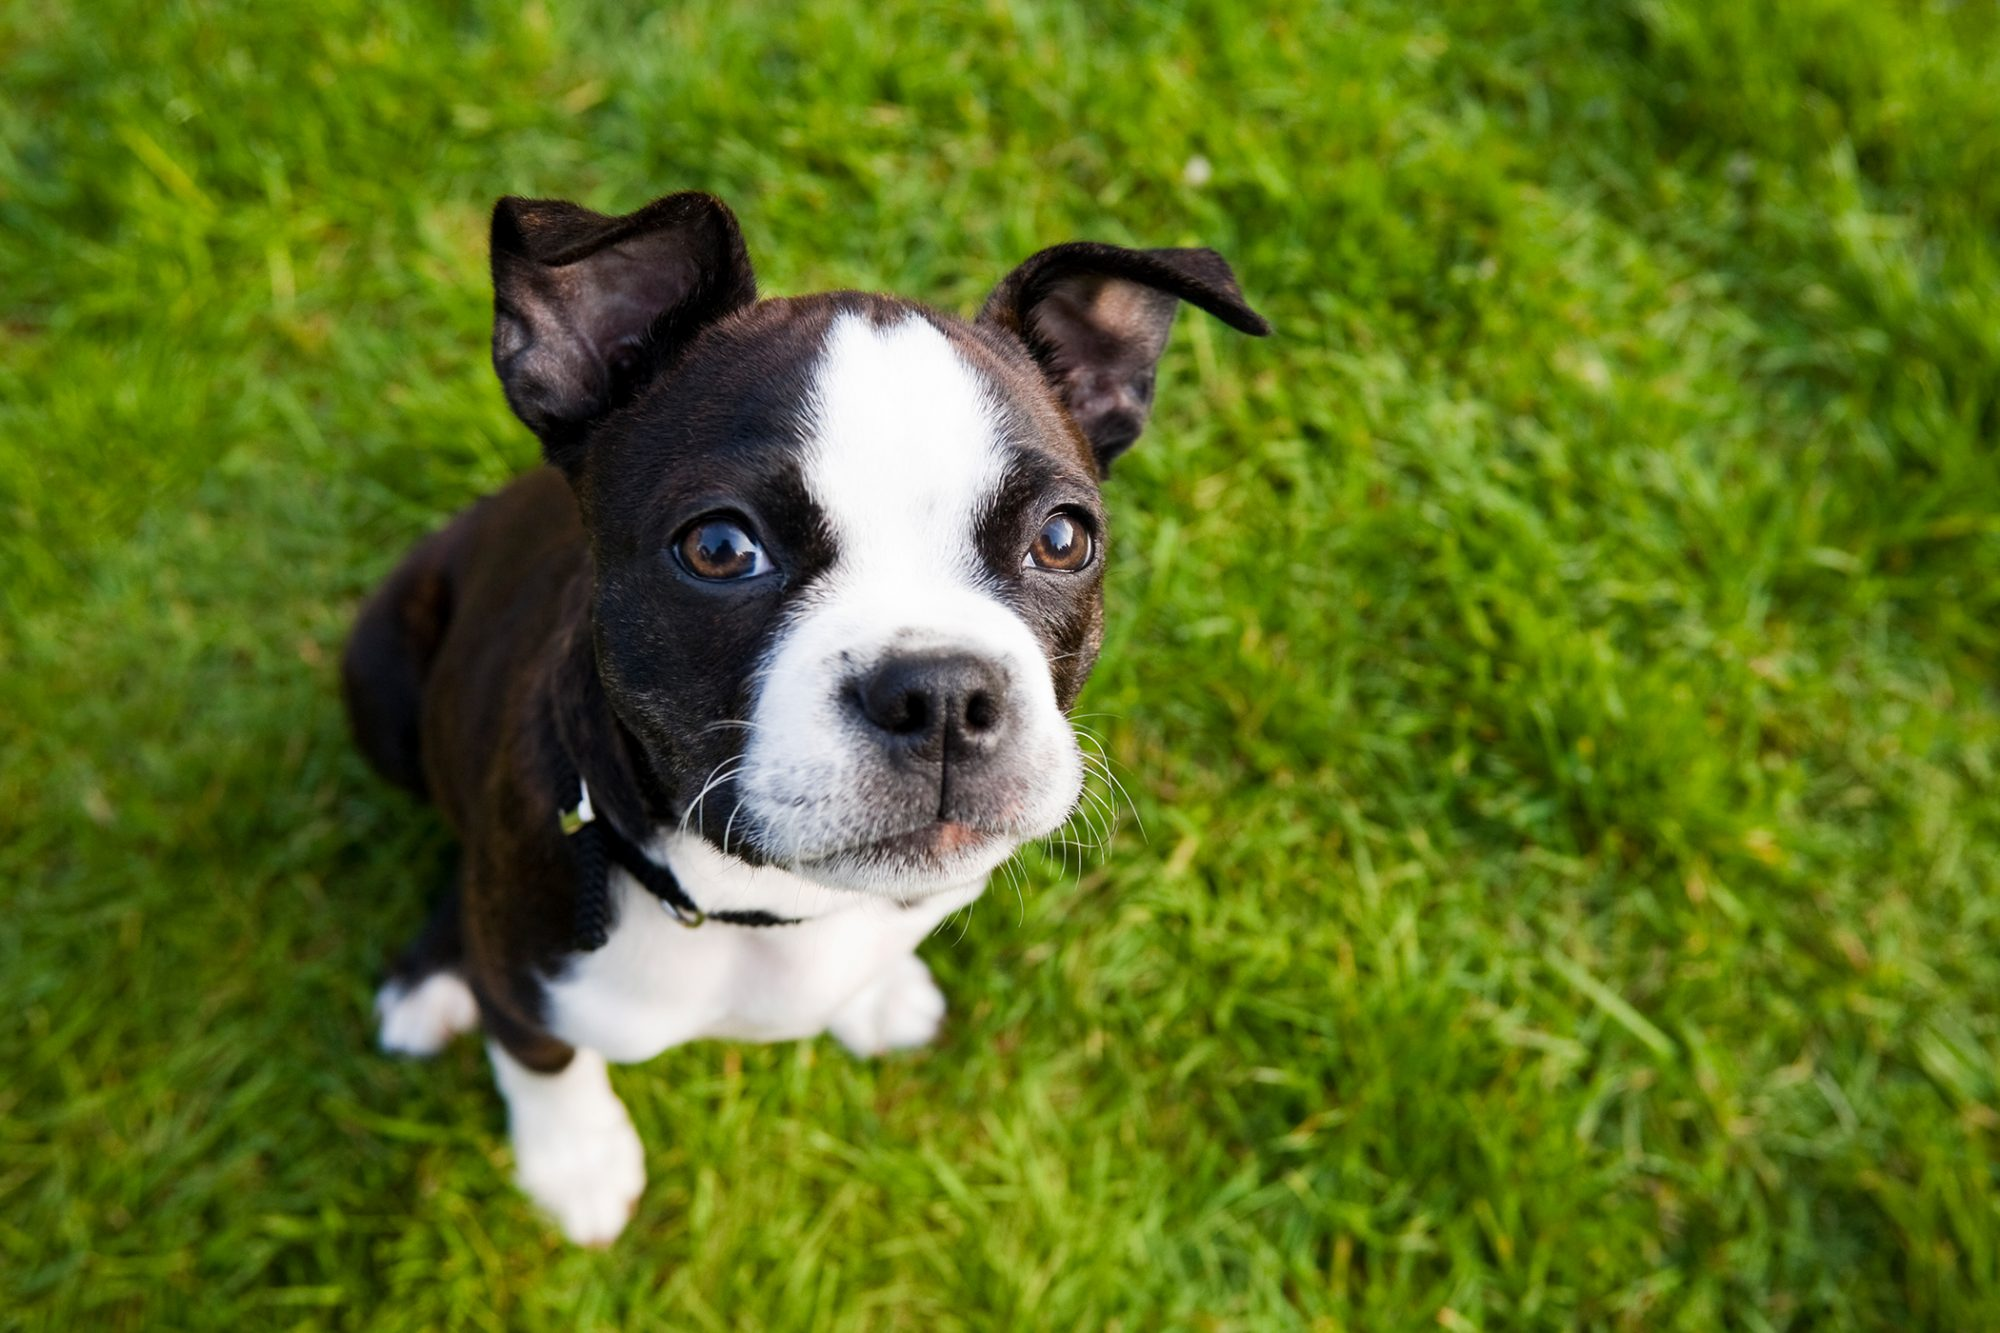 Boston Terrier puppy sitting in grass looking up at the camera